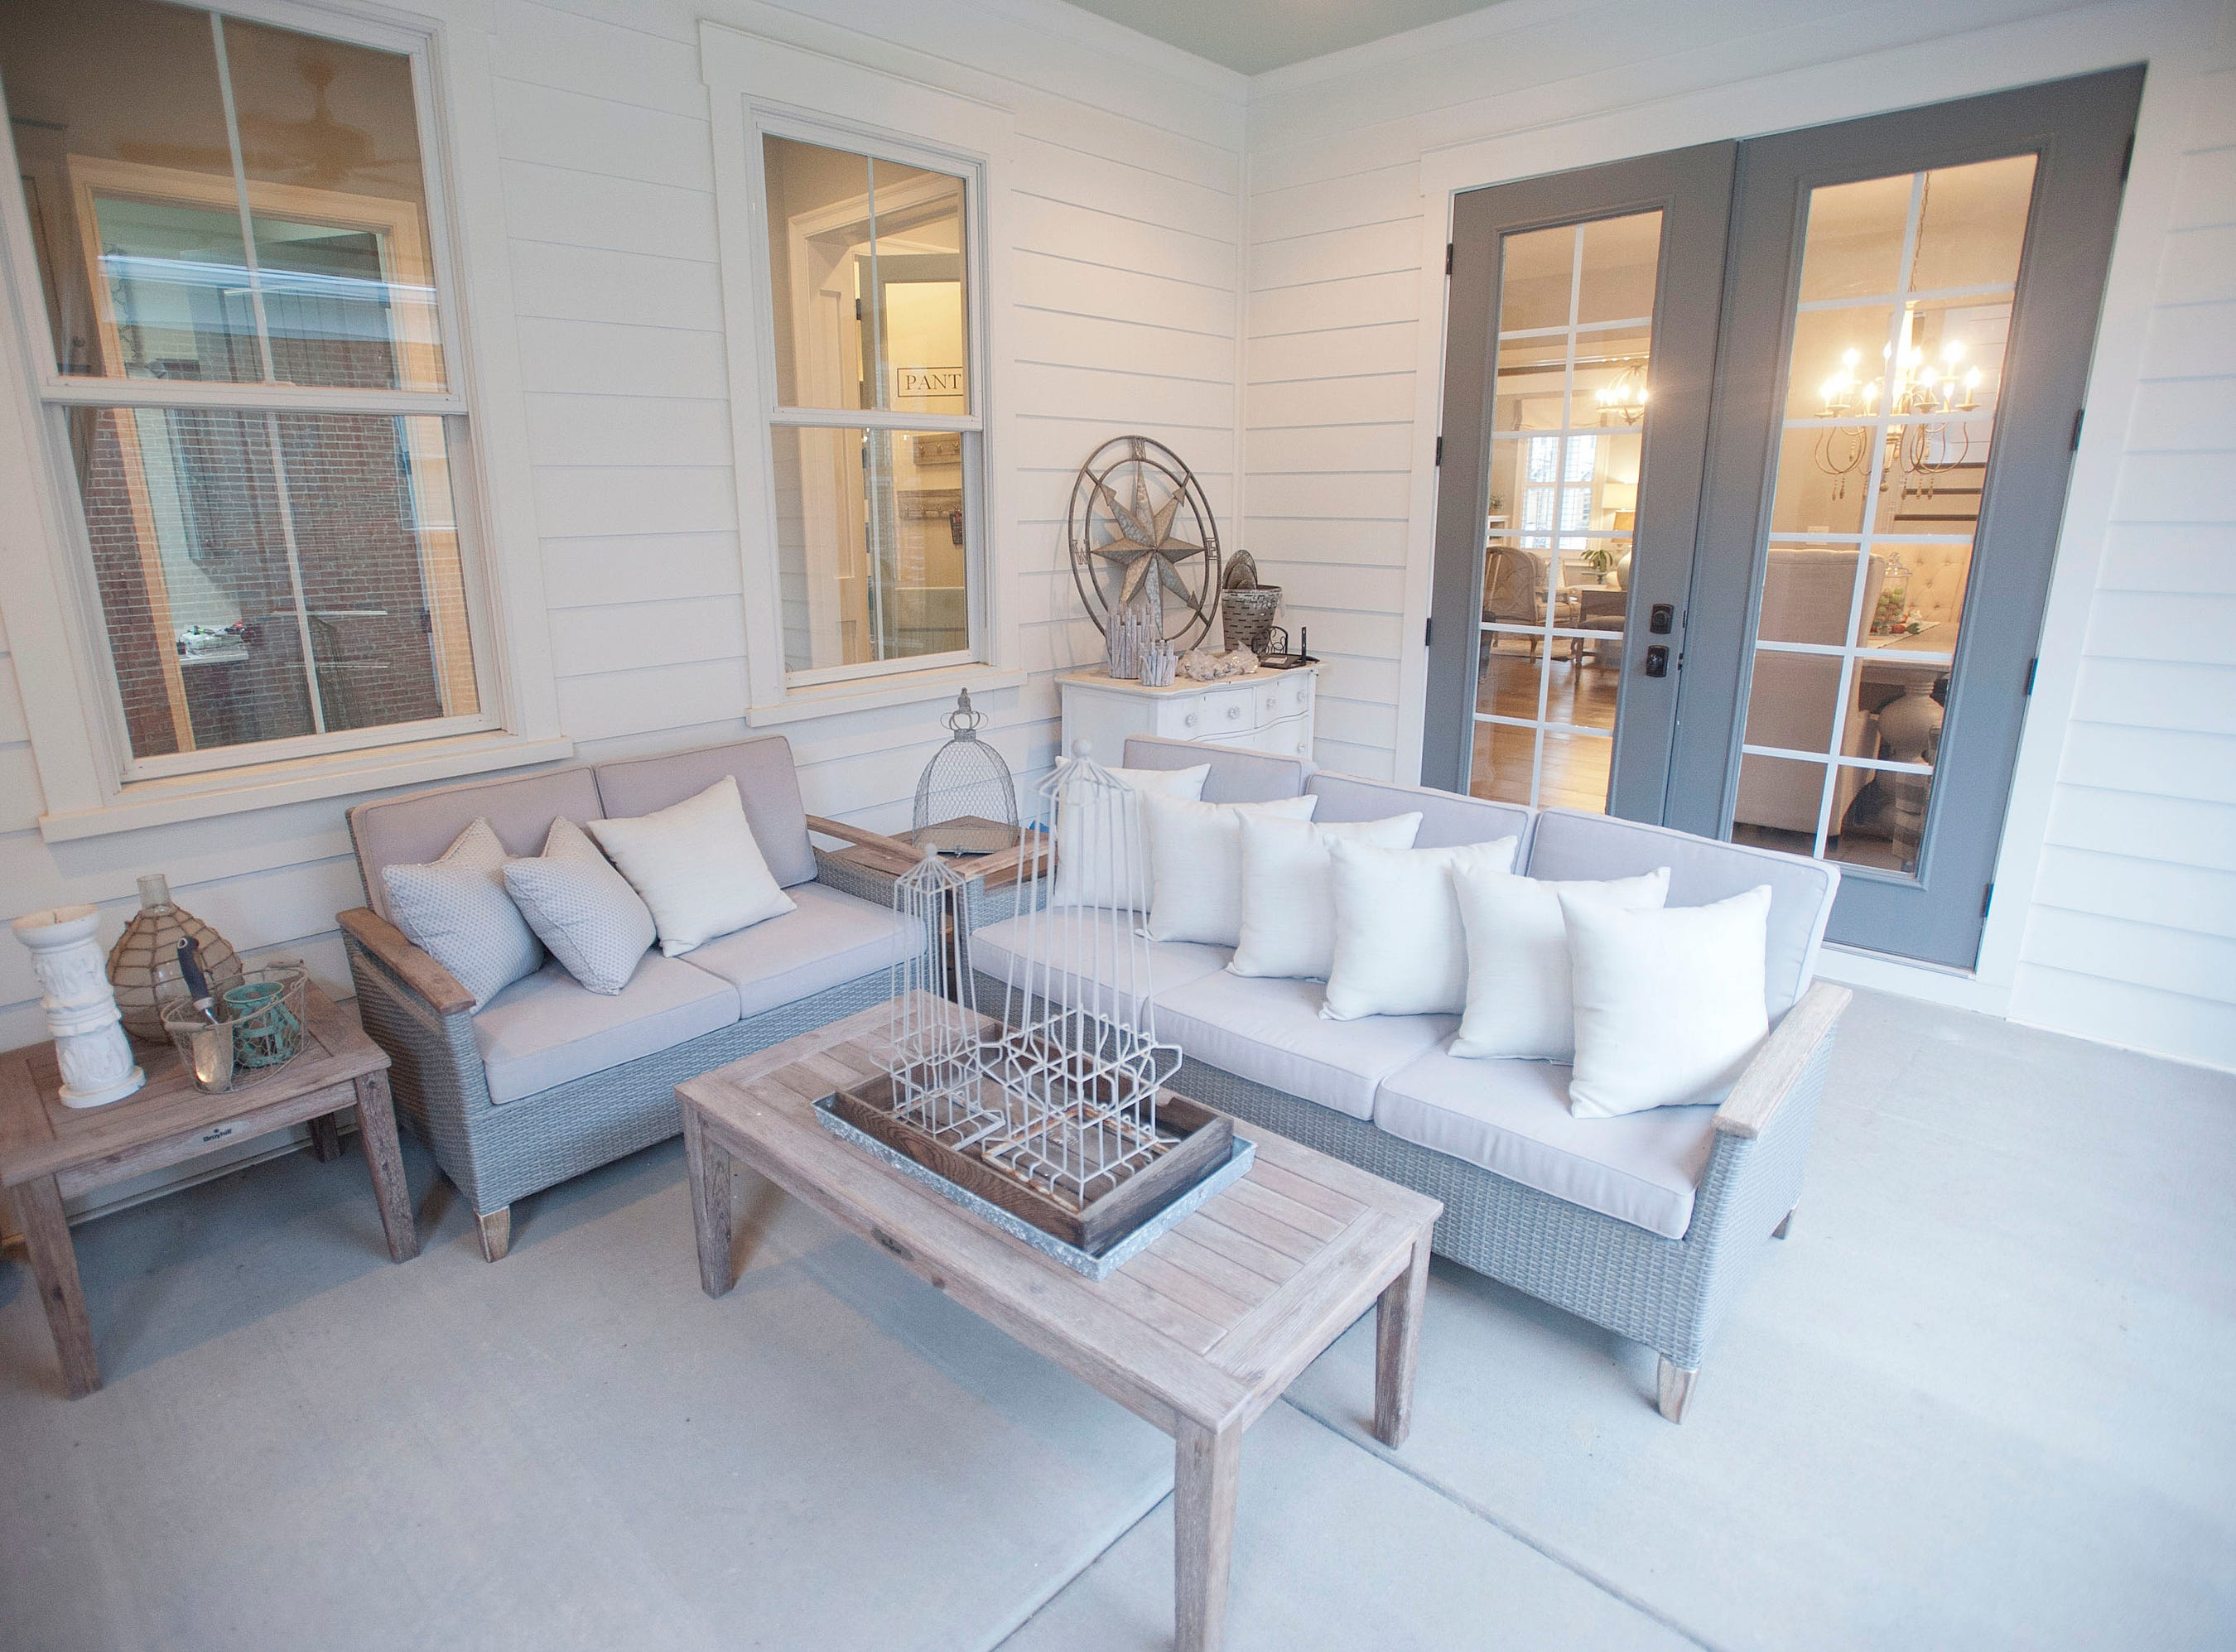 An outside deck is just off the dining room.01 March 2019